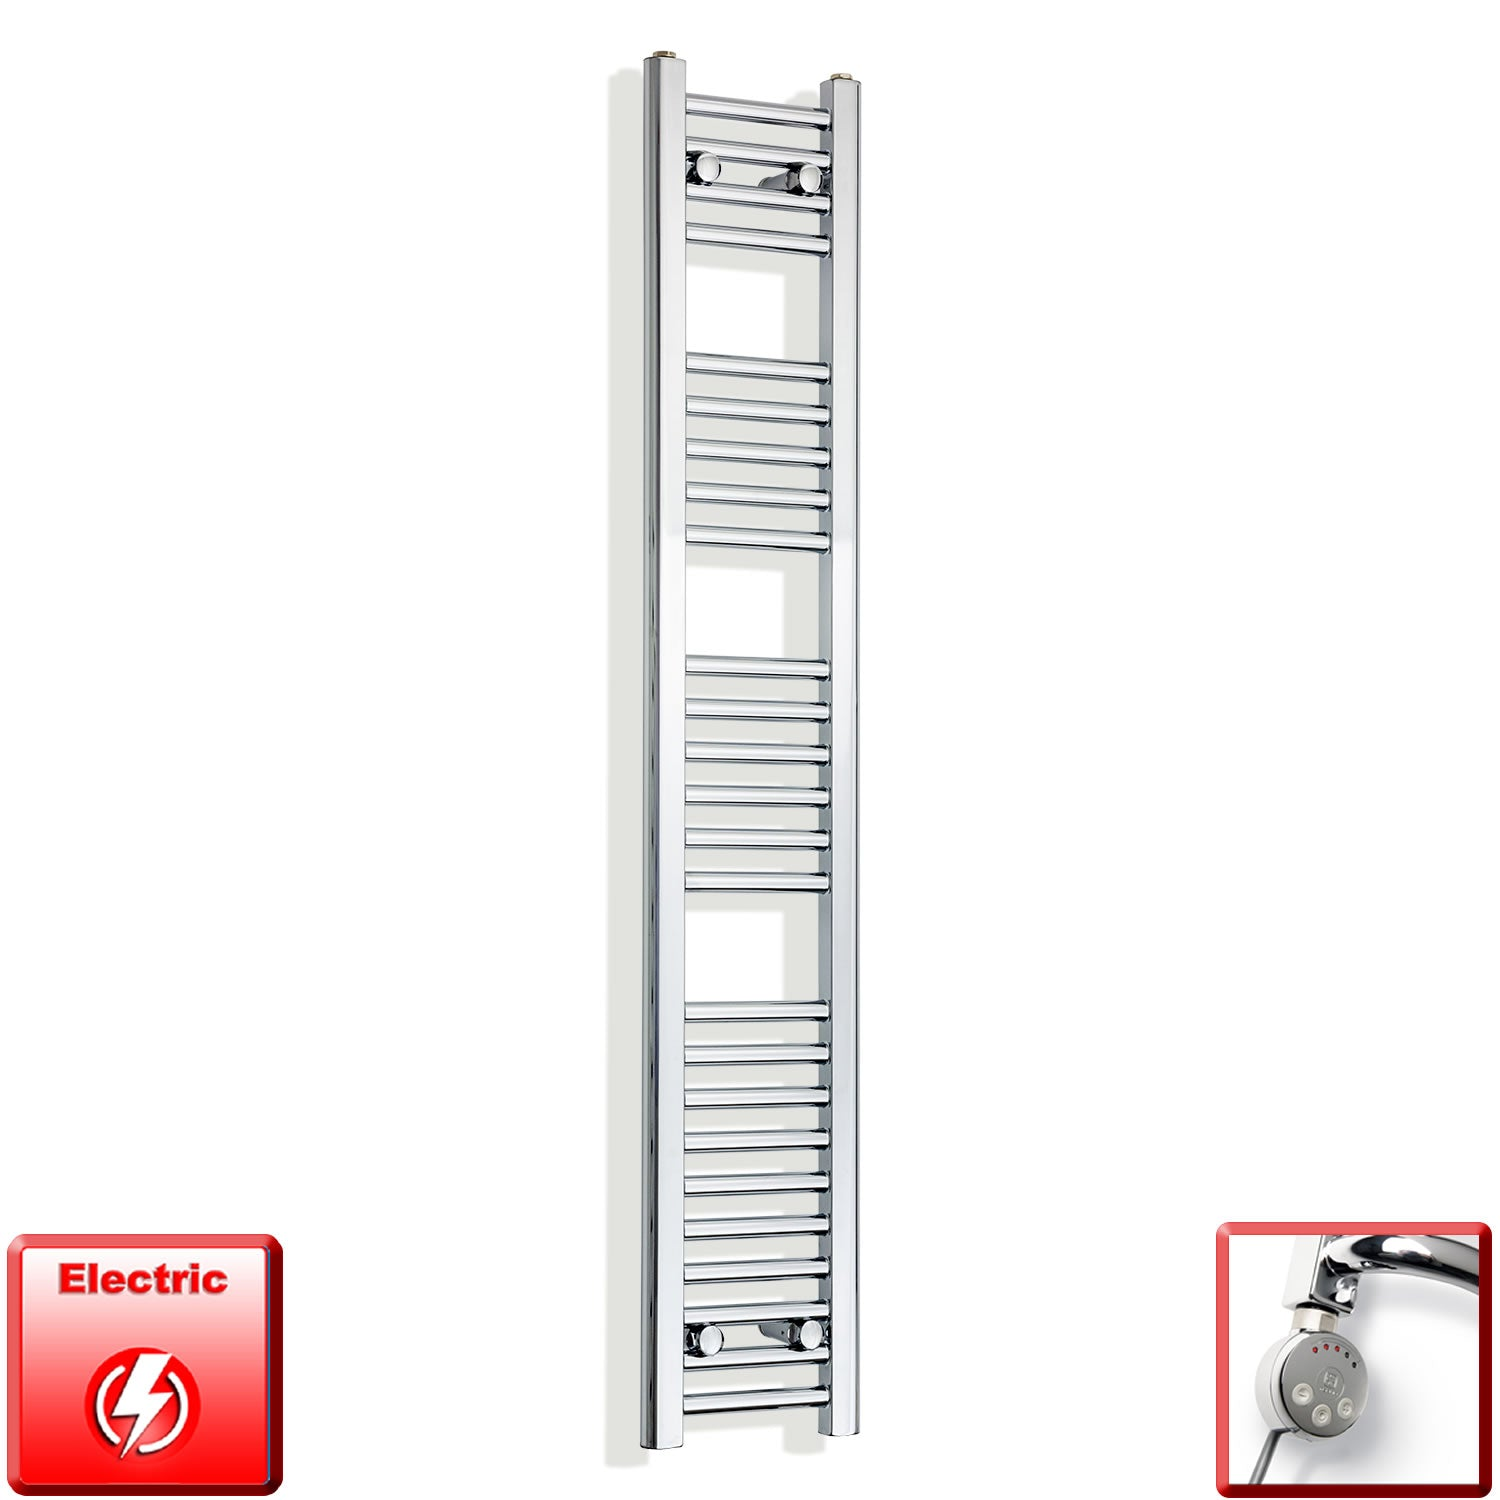 250mm Wide 1400mm High Pre-Filled Chrome Electric Towel Rail Radiator With Thermostatic MEG Element